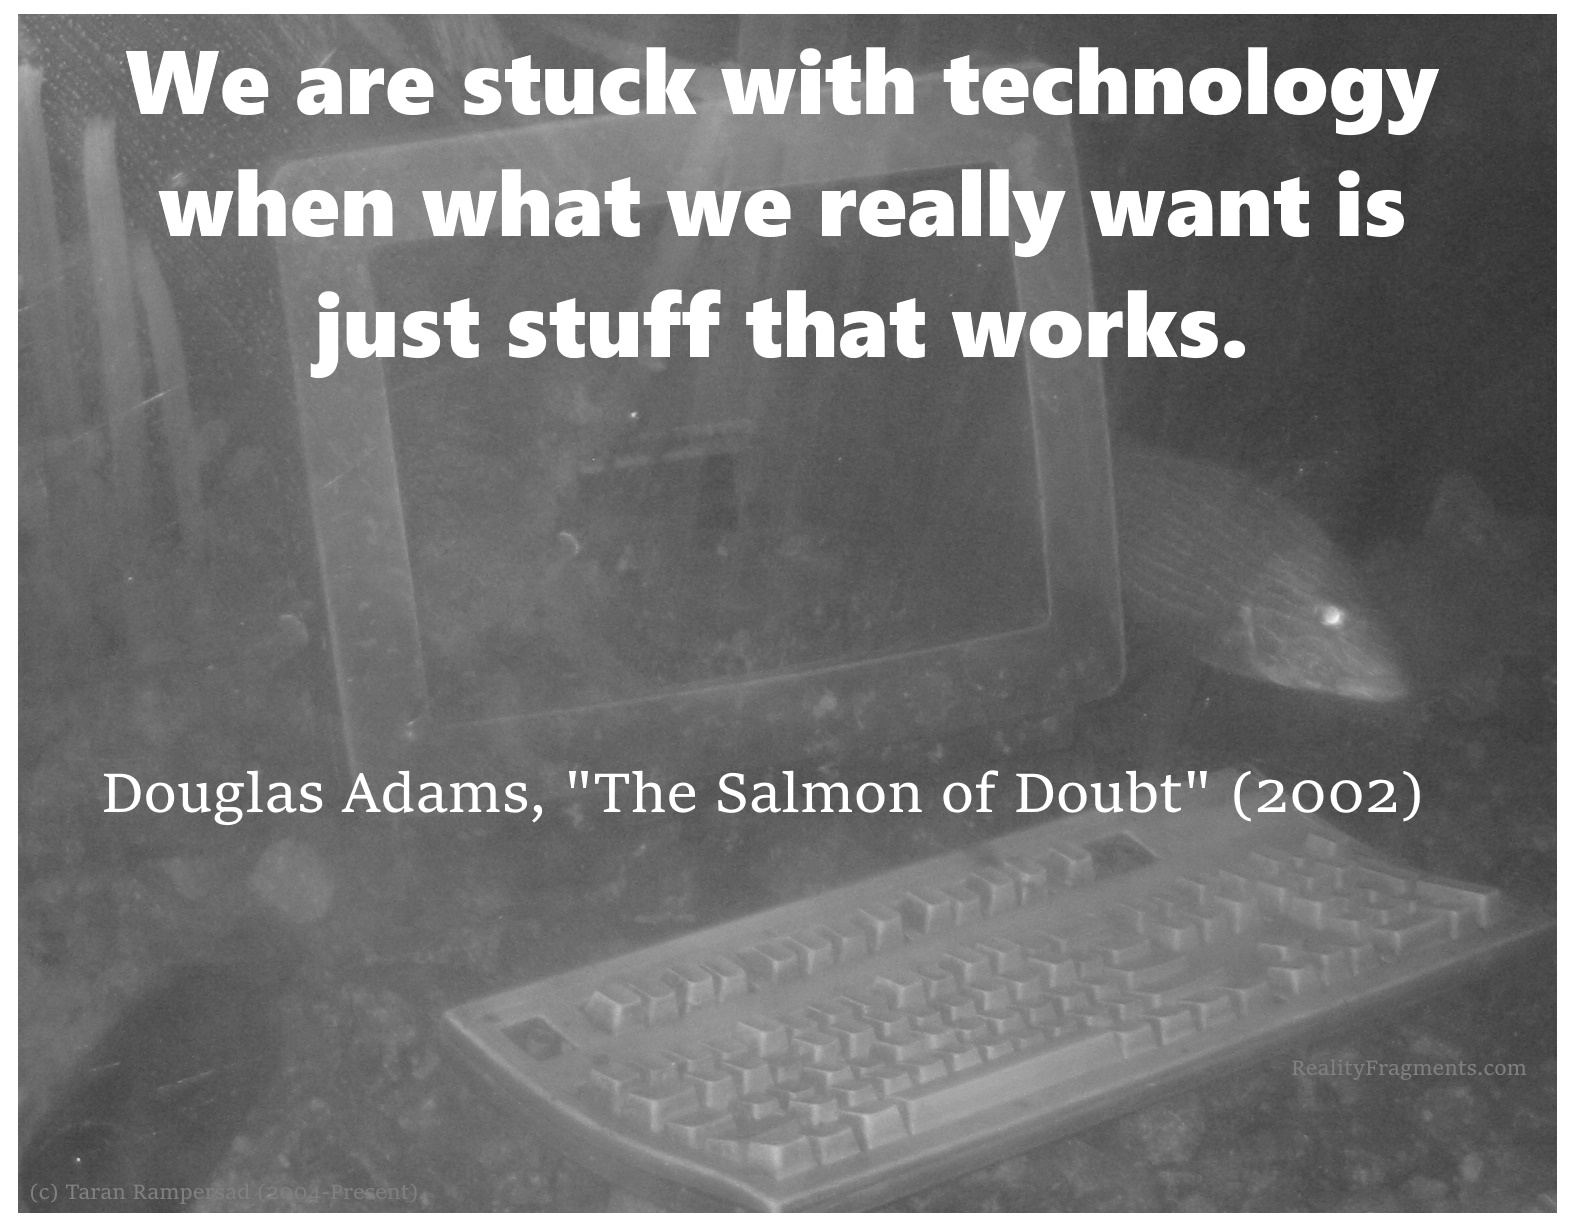 We are stuck with technology when what we really want is just stuff that works.